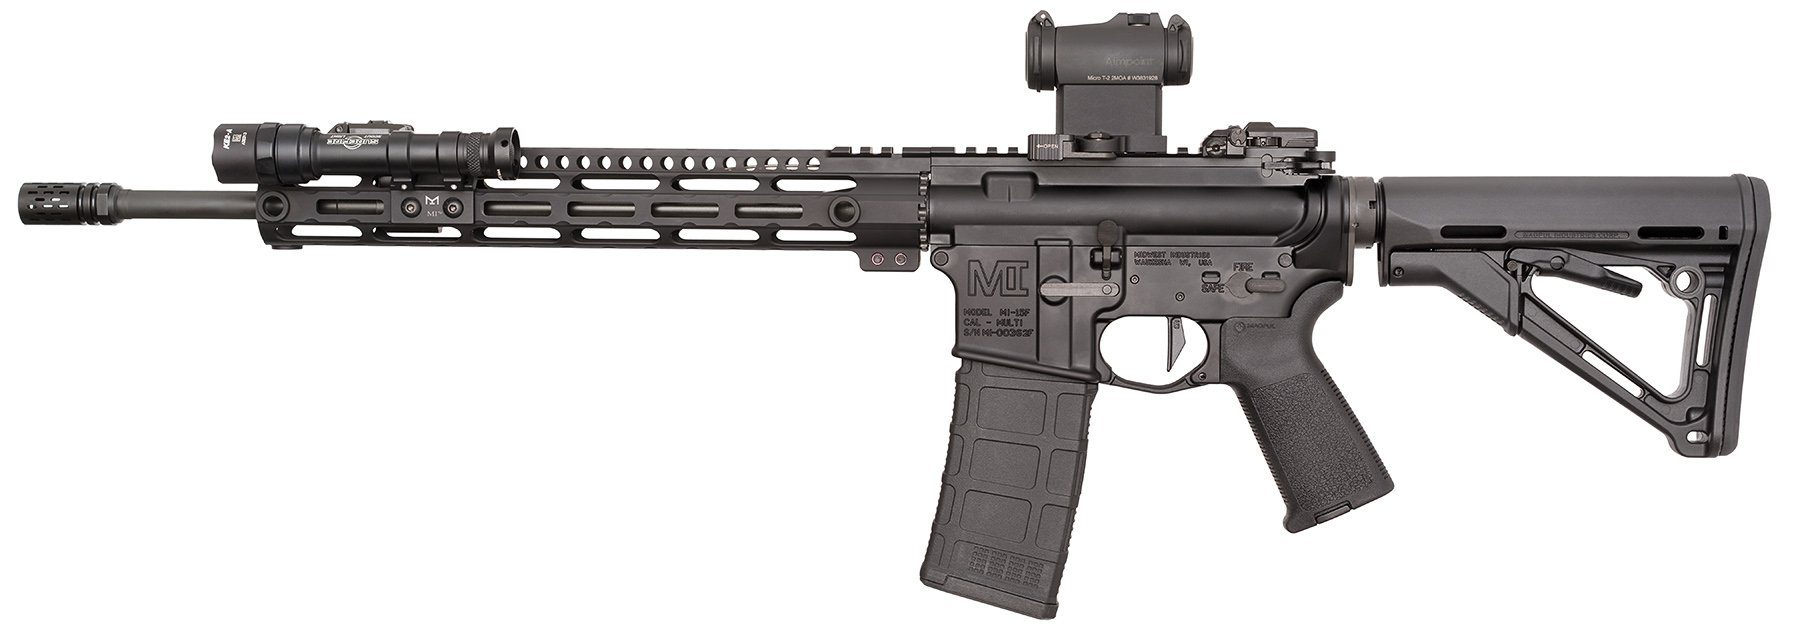 Assault Weapons: Gun Control's New Target of Opportunity